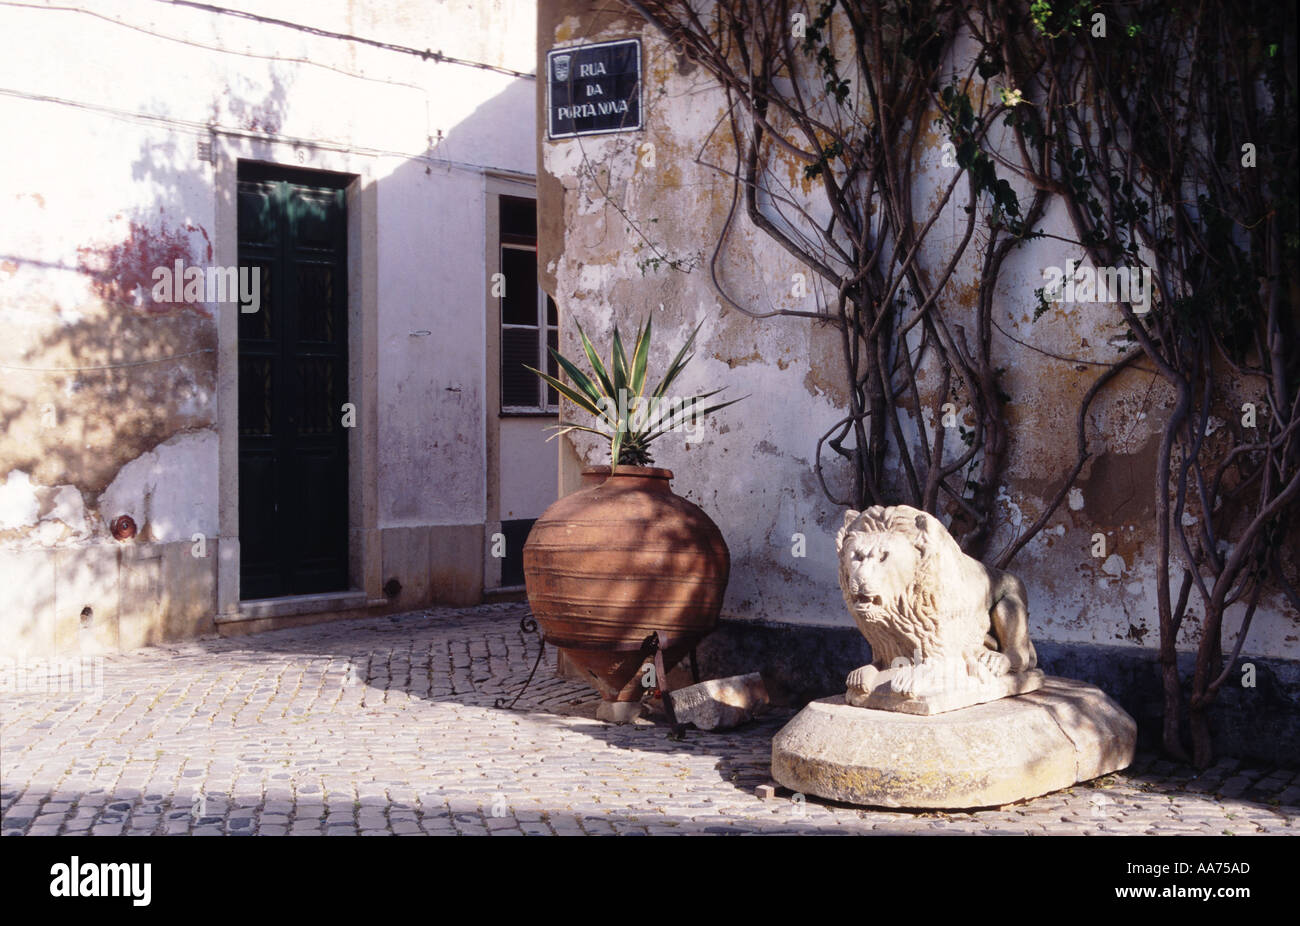 Portugal Algarve Faro idyllic place in the old city - Stock Image